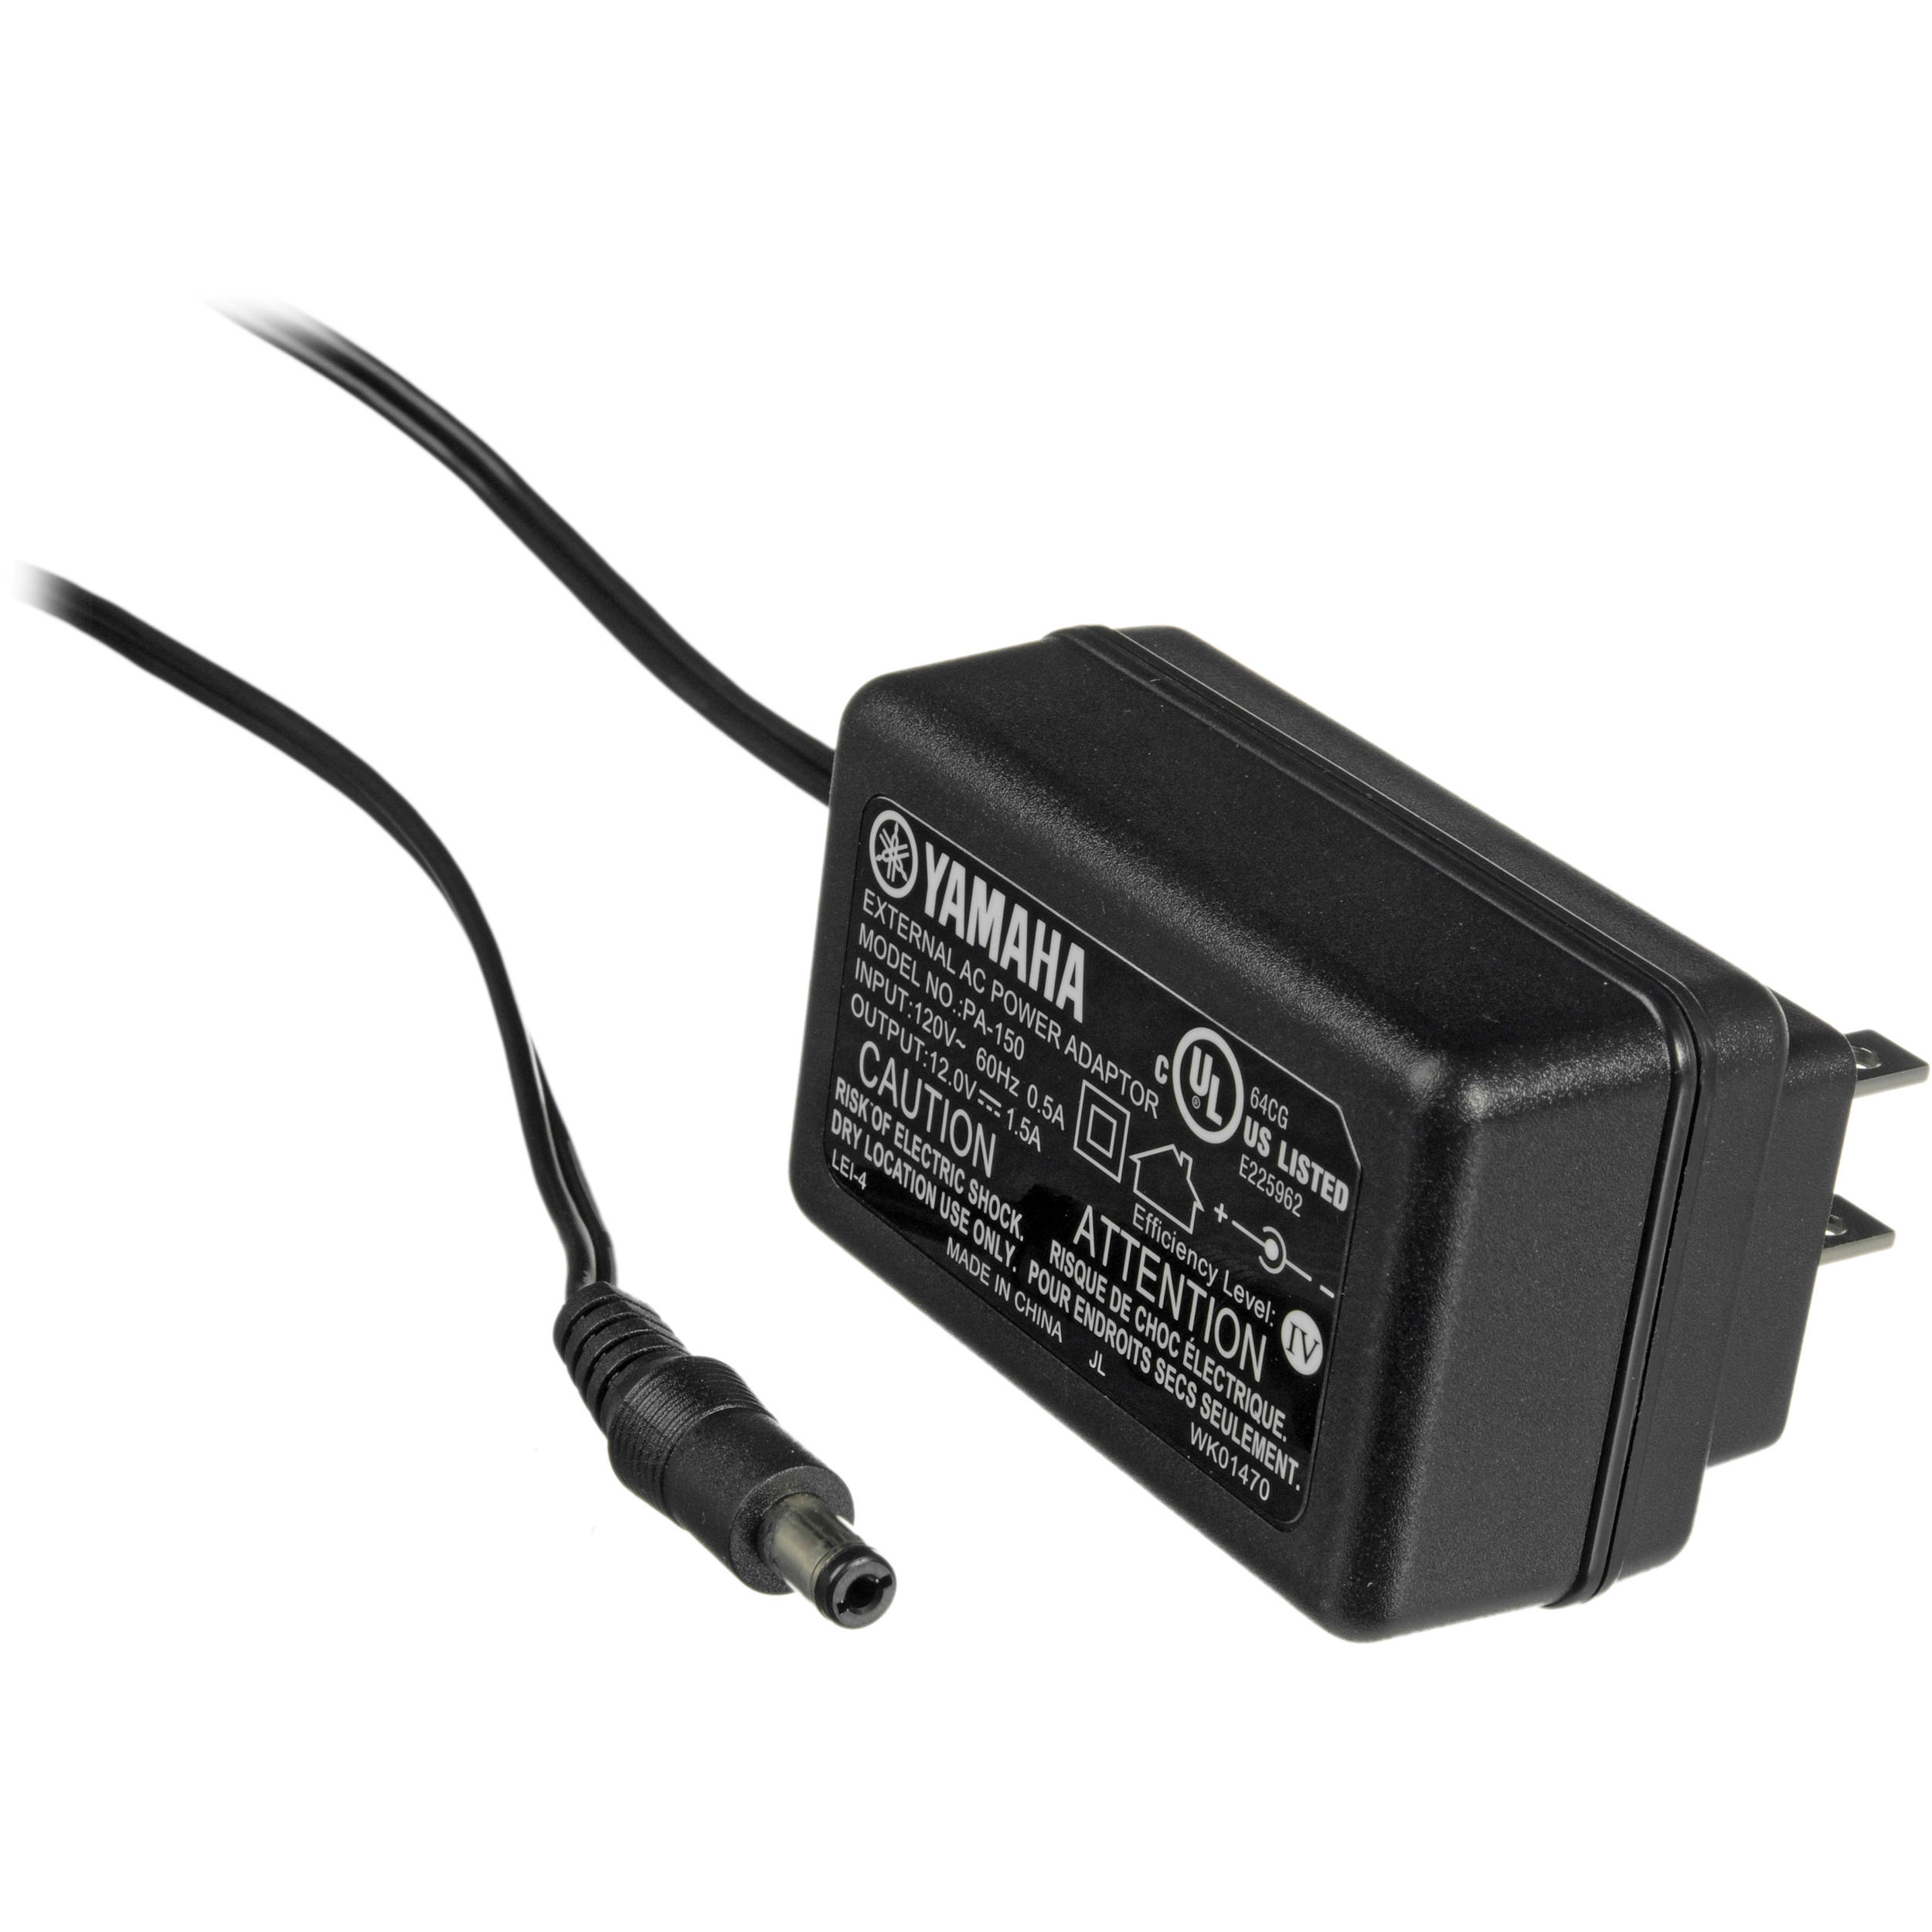 Yamaha PA150 AC Adapter for Keyboards and Drums